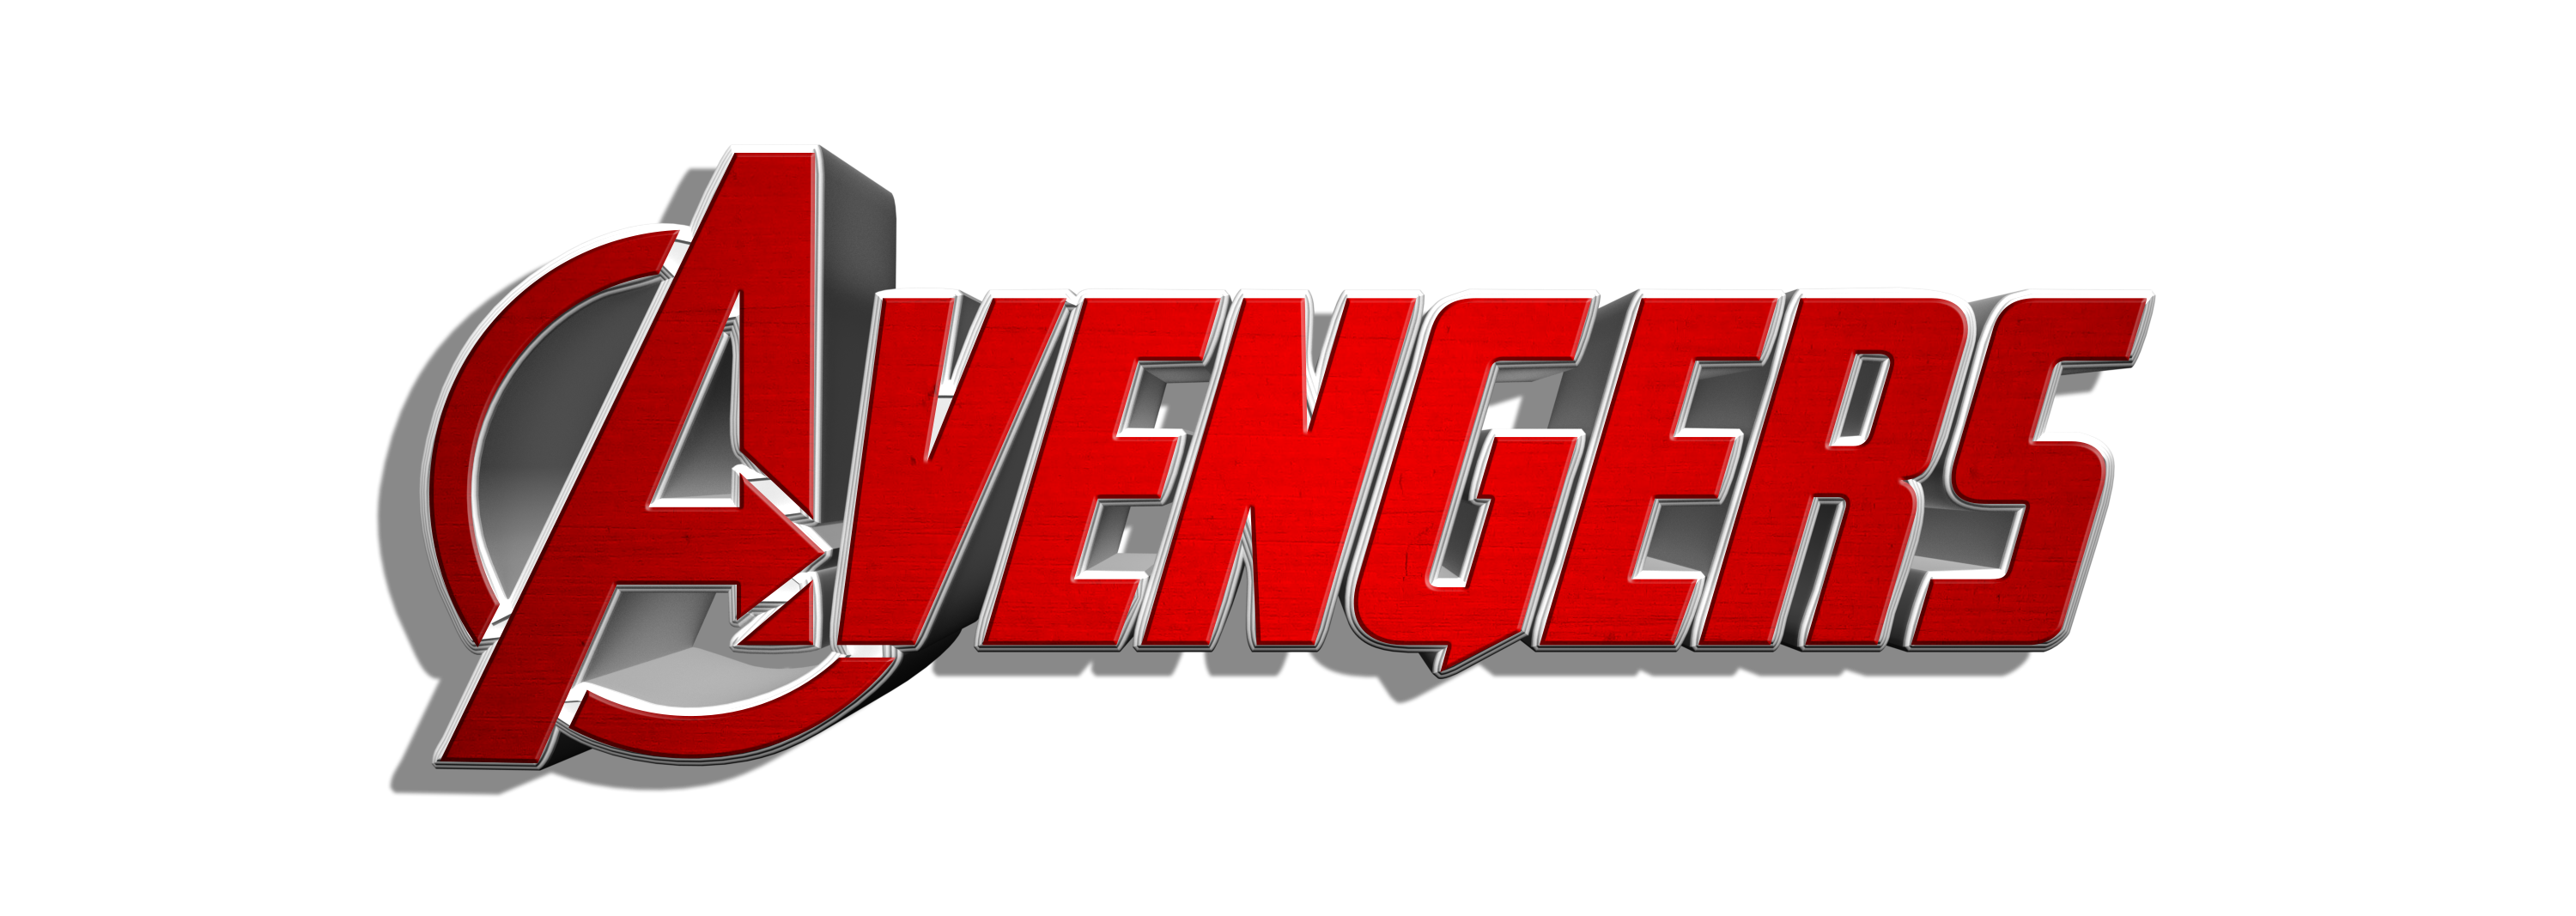 Image result for avenger logo